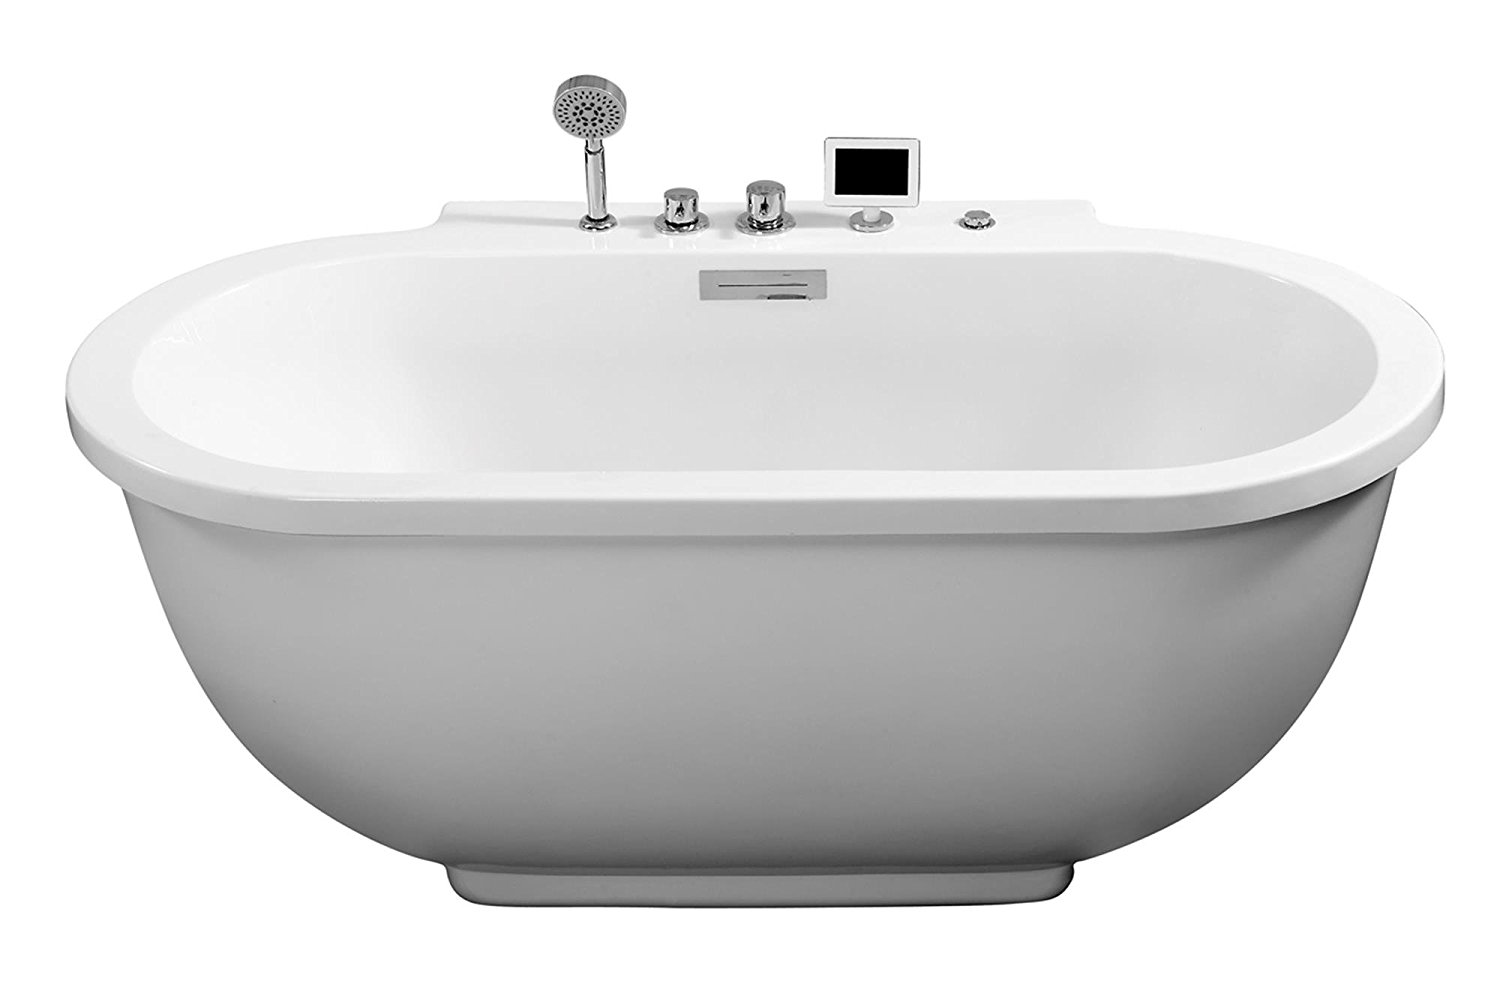 Best Bathtubs of 2018 - Types of Bathtub, Features, Buyers Guide